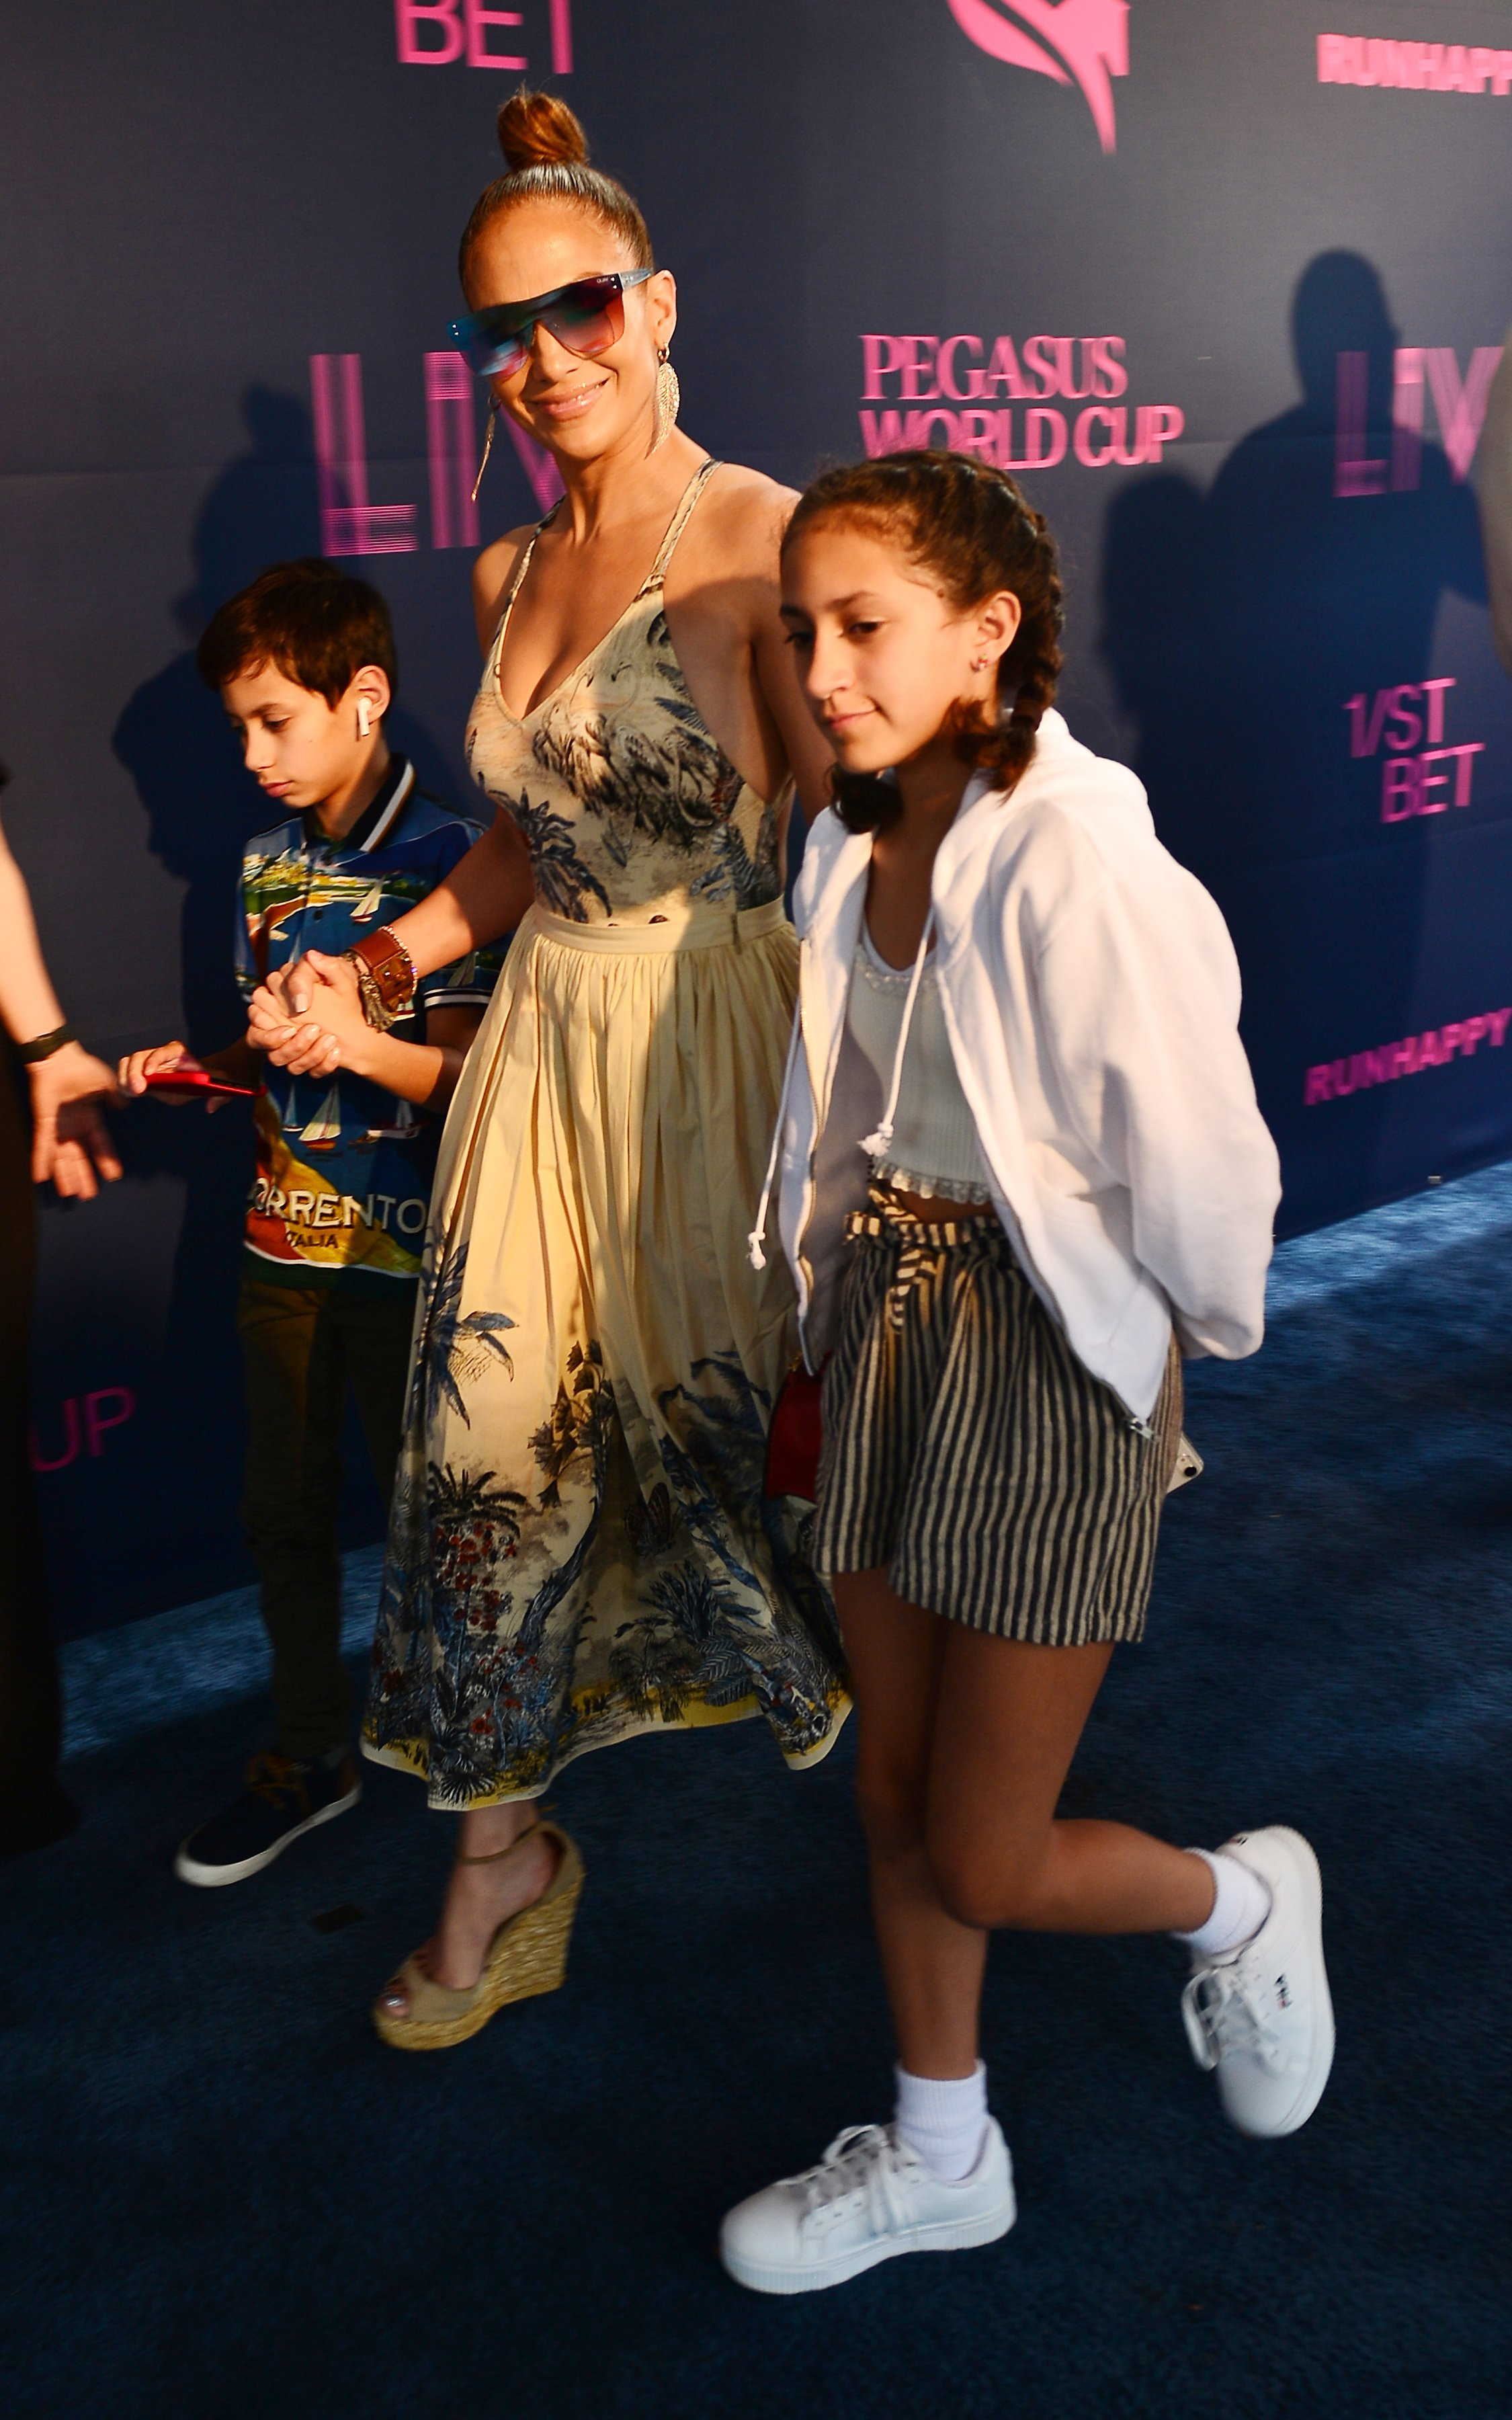 Jennifer Lopez with son Maximilian and daughter Emme attending the Pegasus World Cup Championship in Hallandale Beach, Florida on January 25, 2020 | Photo: Getty Images